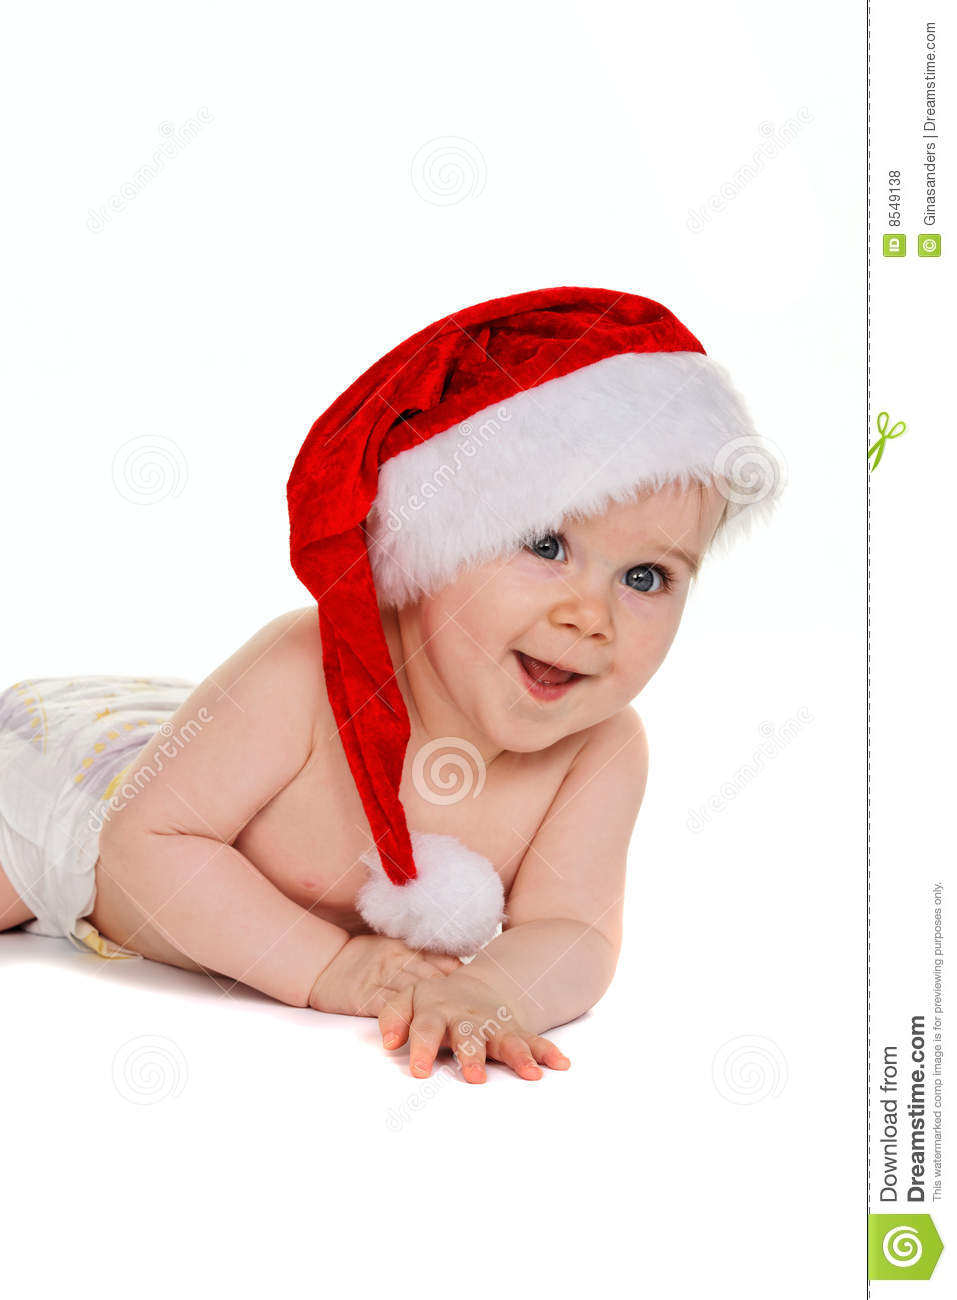 small child with santa claus hat baby - Small Children Images